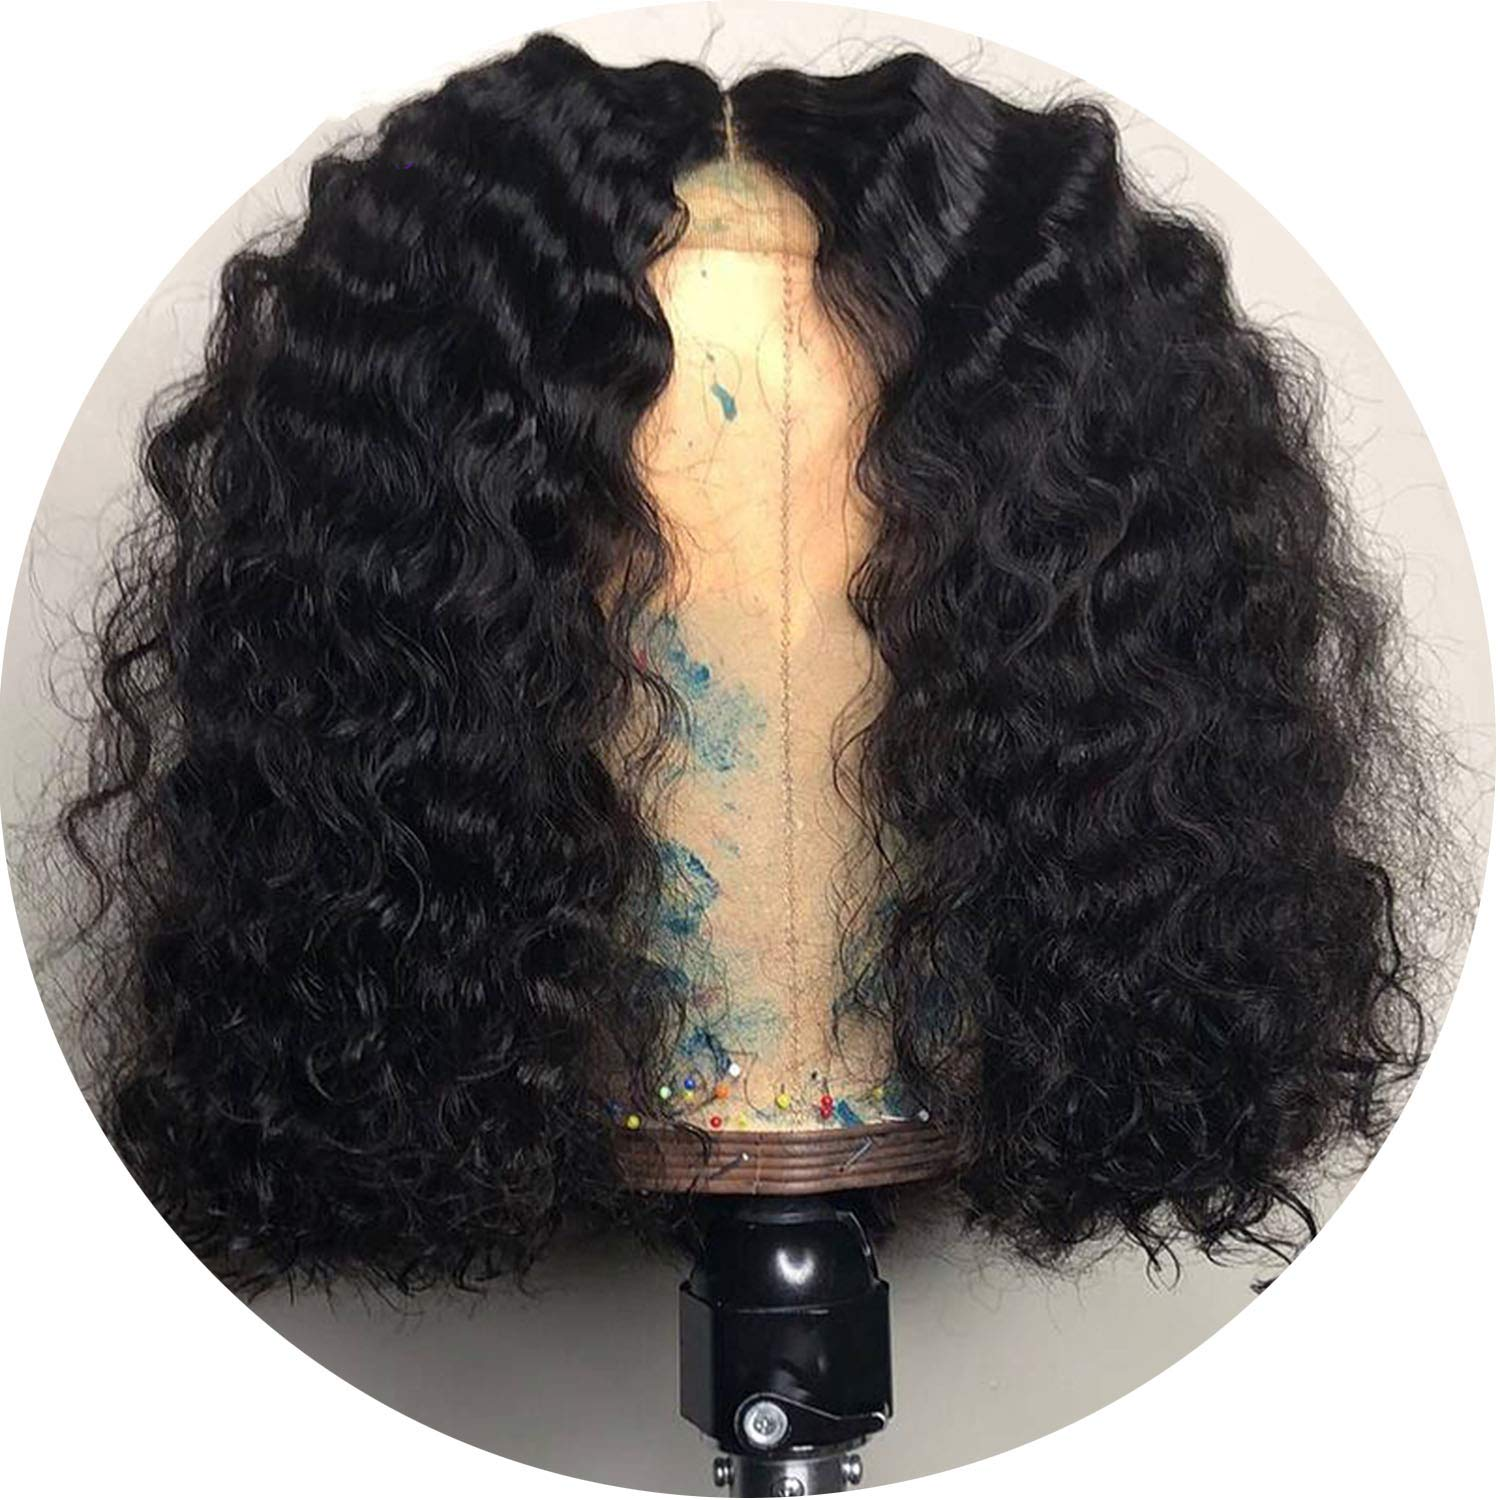 Lace Frontal Wig Pre Plucked With Baby Hair Brazilian Deep Curly Remy Lace Front Human Hair Wigs For Women Glad You Came,#1,16inches,130%